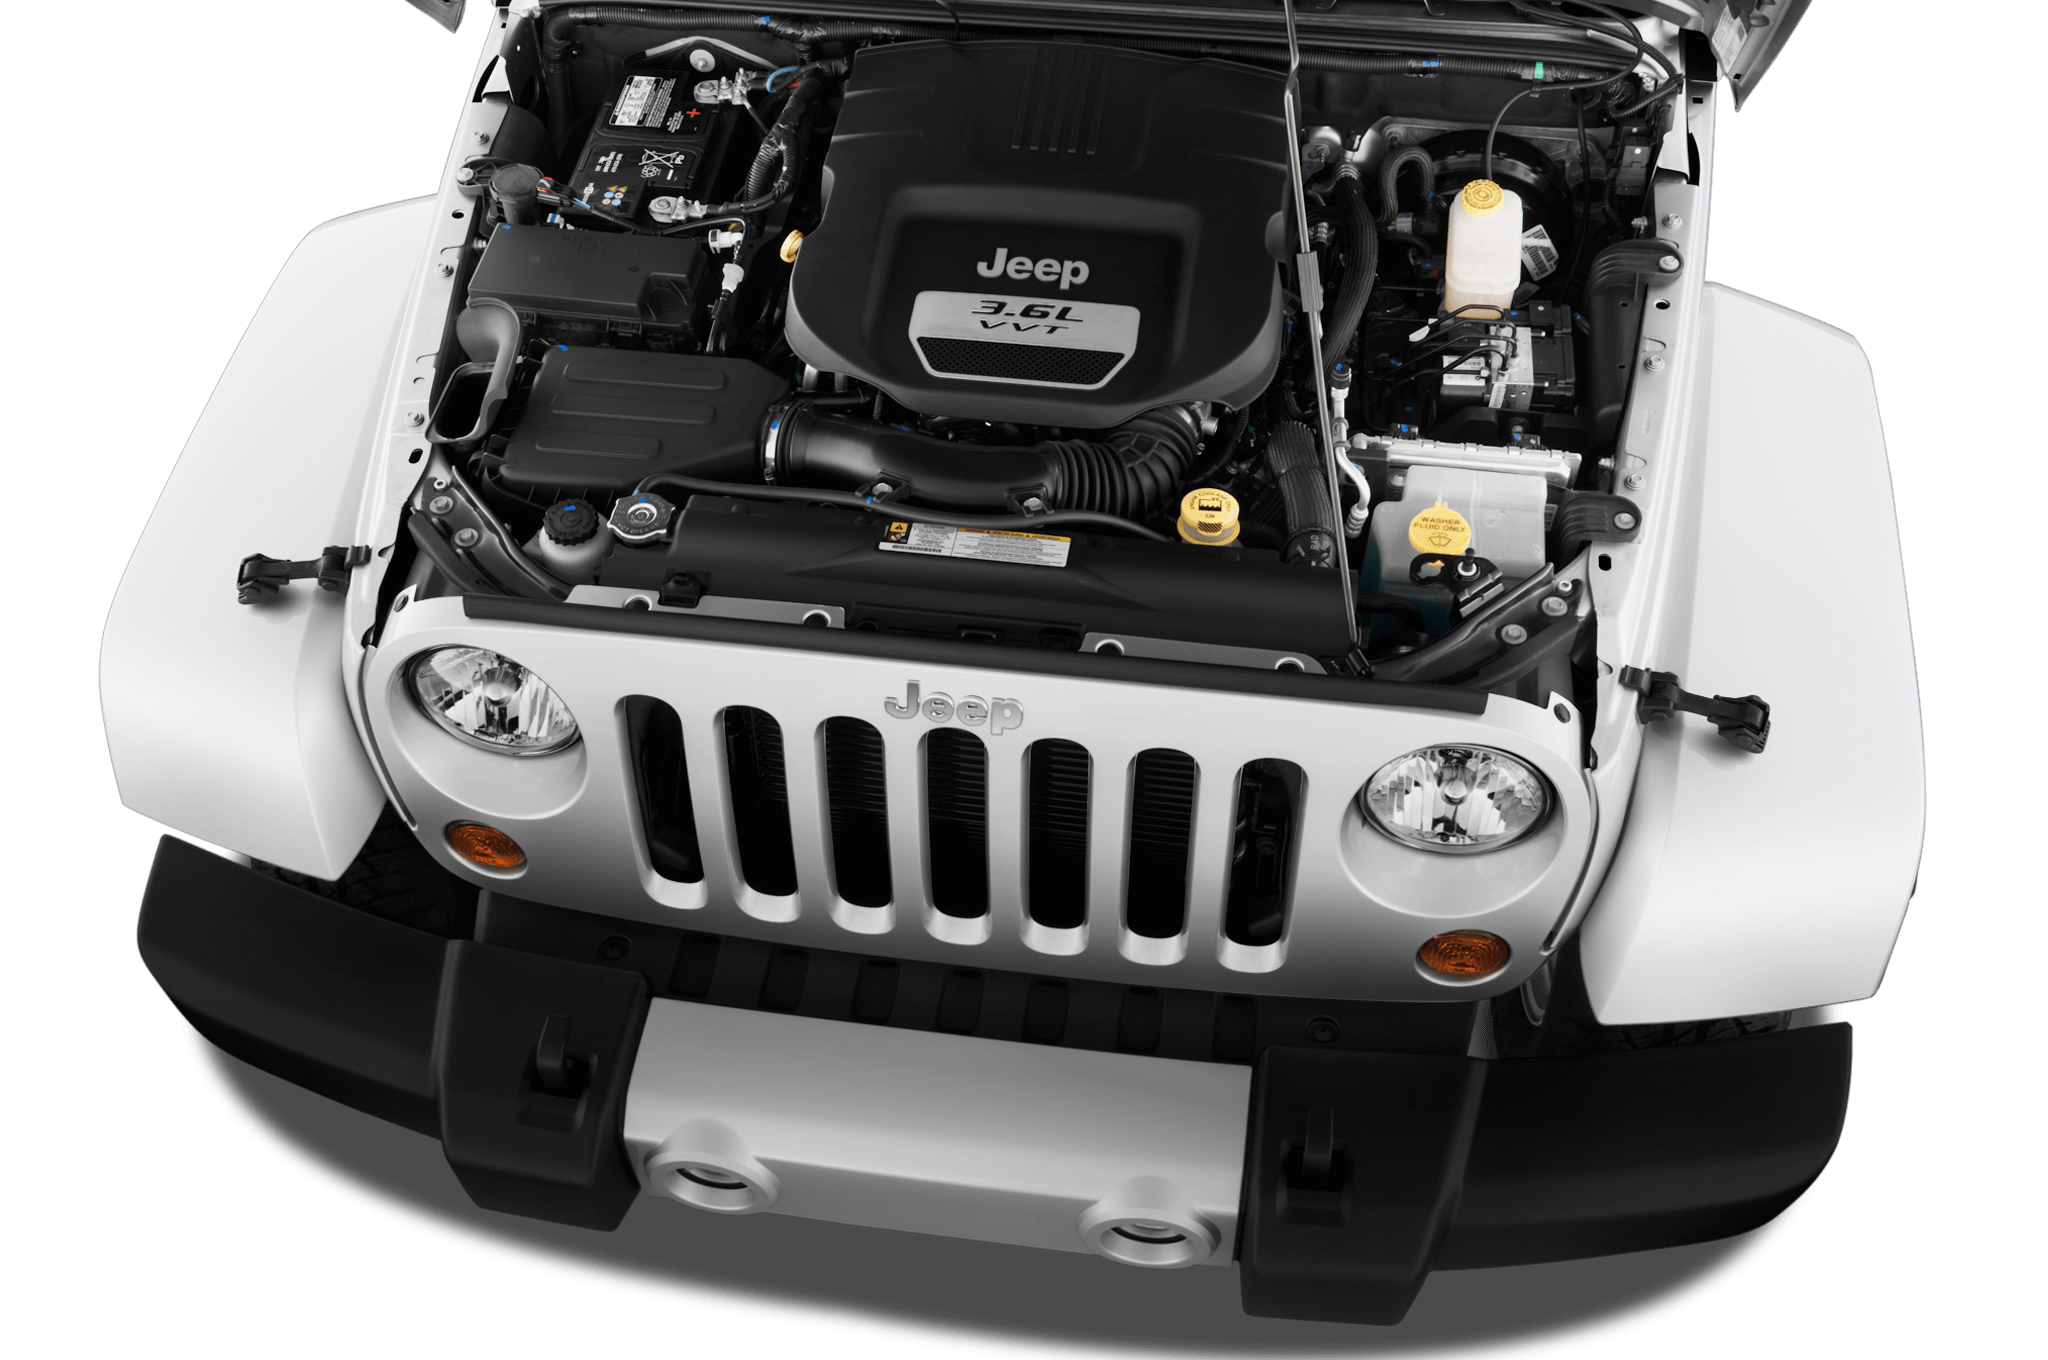 2014 Jeep Wrangler Wiring Diagram